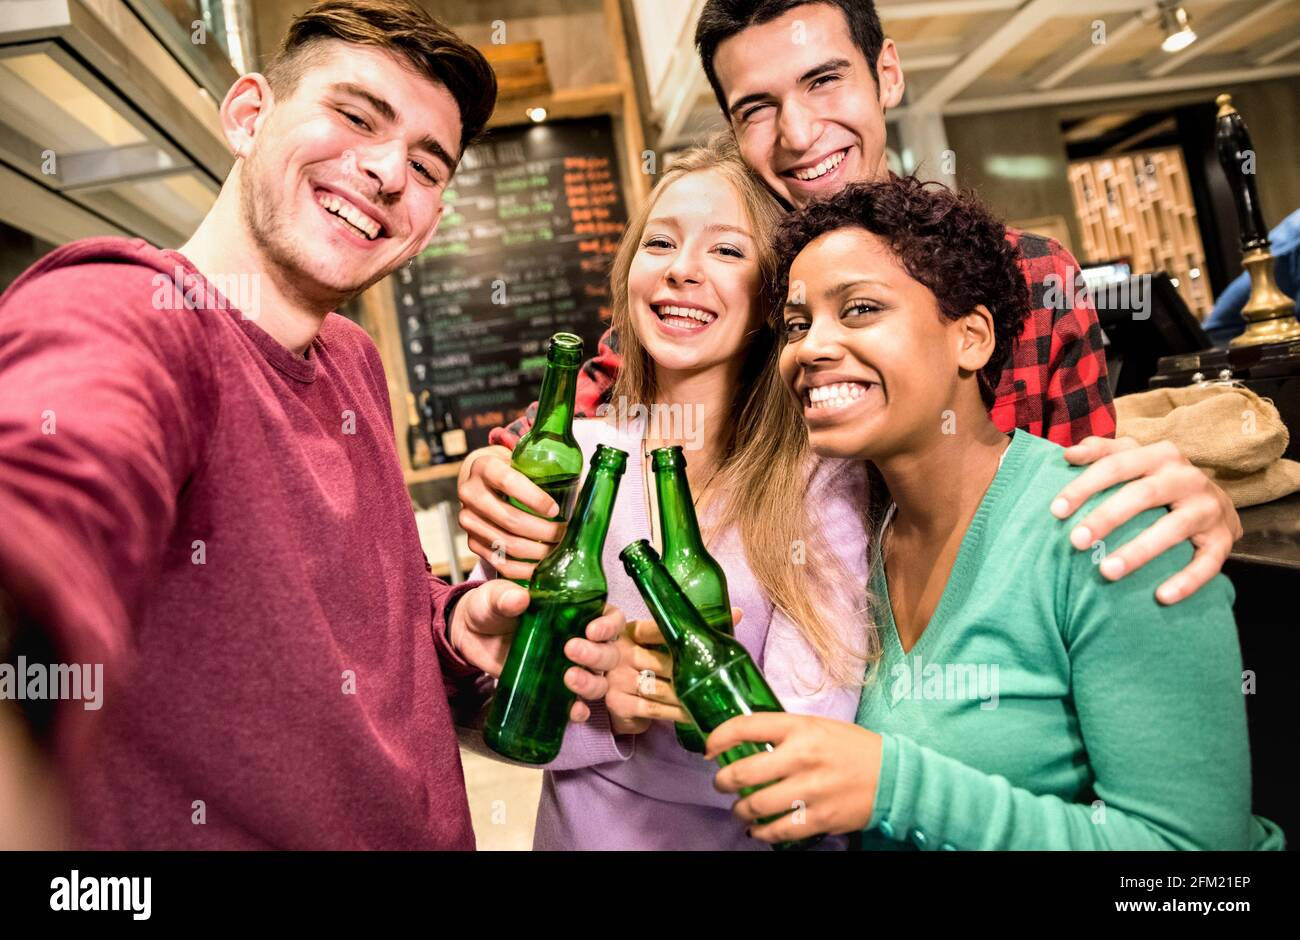 Multiracial friends taking selfie and drinking beer at fancy brewery restaurant - Friendship concept with young people enjoying time together Stock Photo